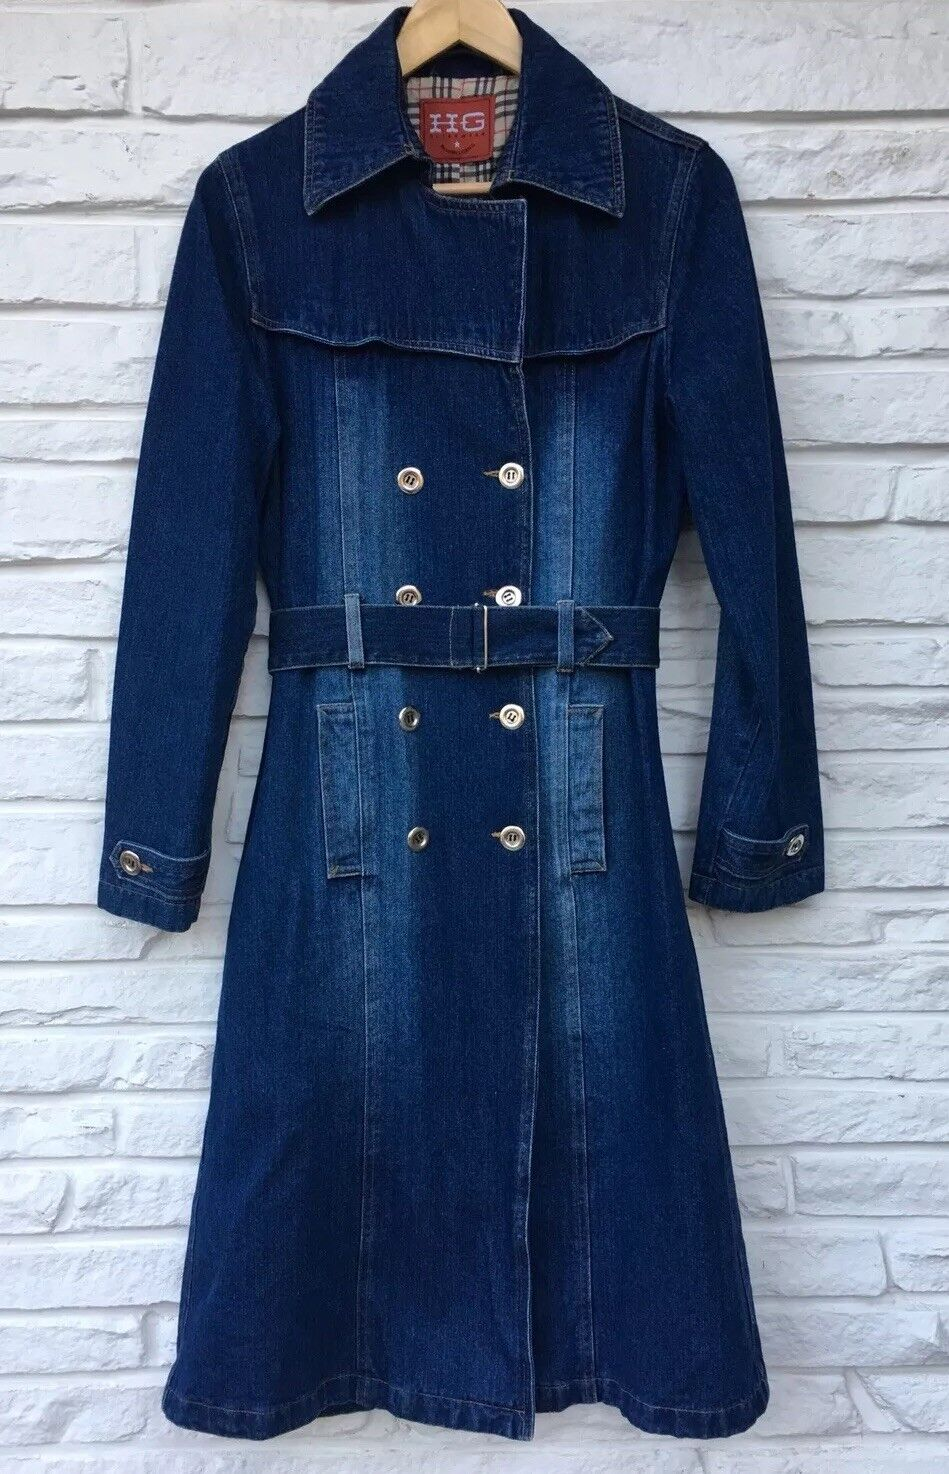 HG Outerwear Rodeo Girl Fully Lined Long Denim Coat Double Breasted Size S M